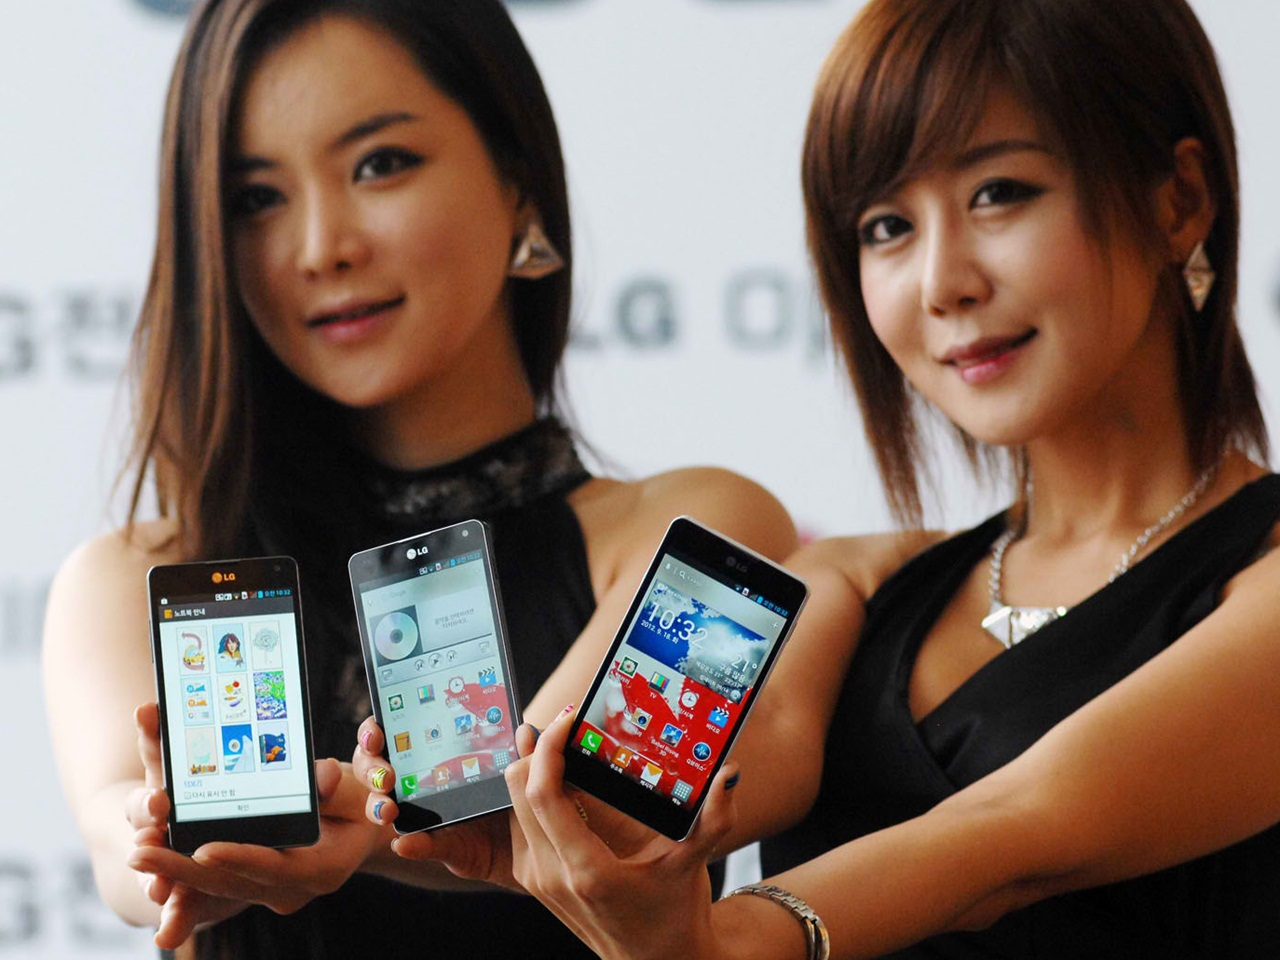 LG Nexus, Nexus smartphone, LG, Google, Nexus